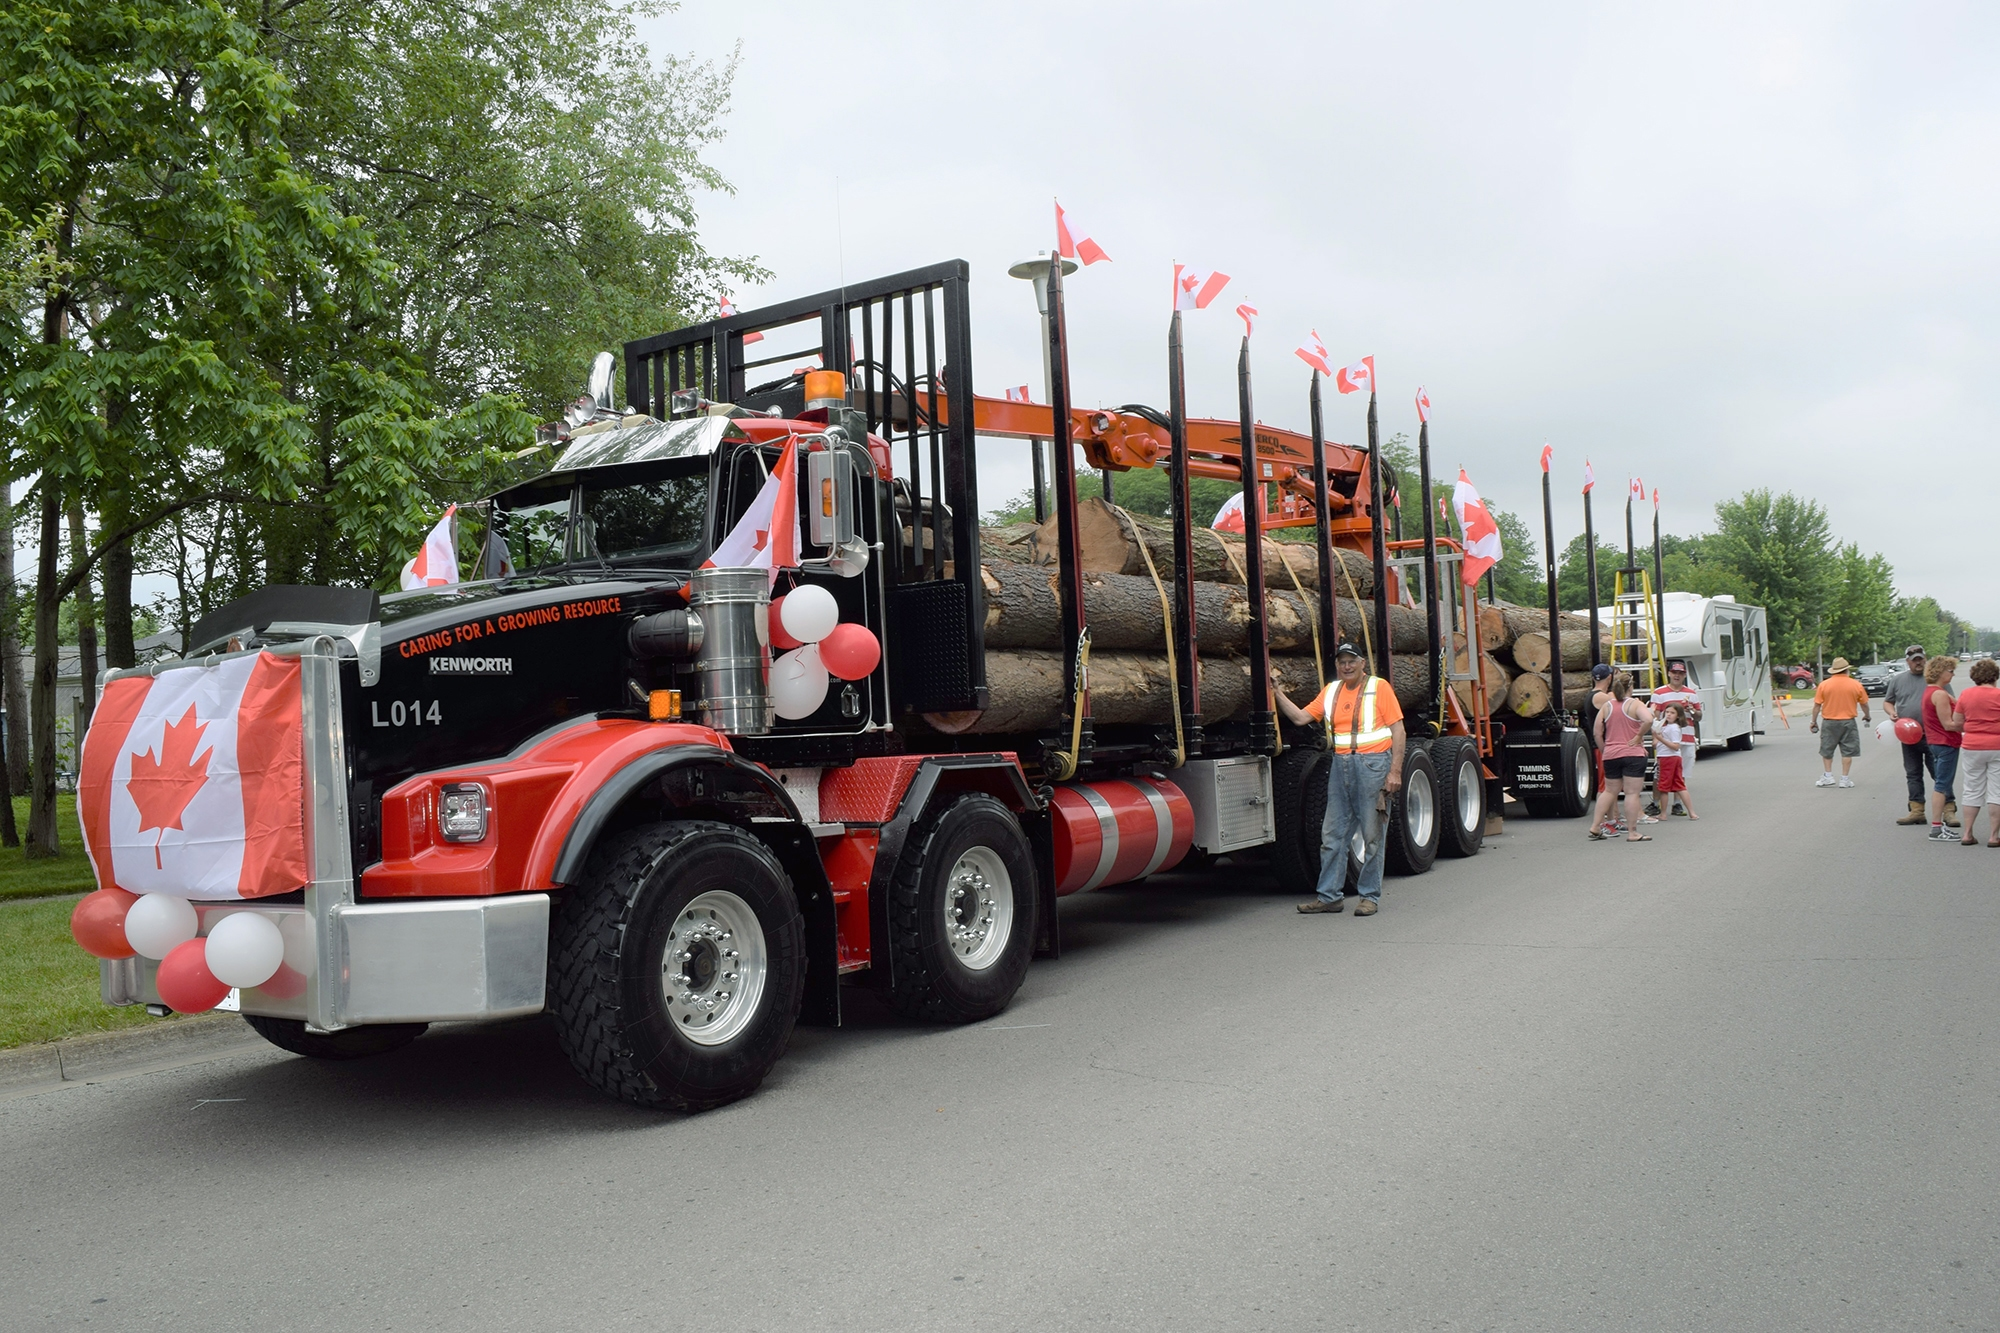 Townsend lumber truck covered in red and white balloons for Canada Day.